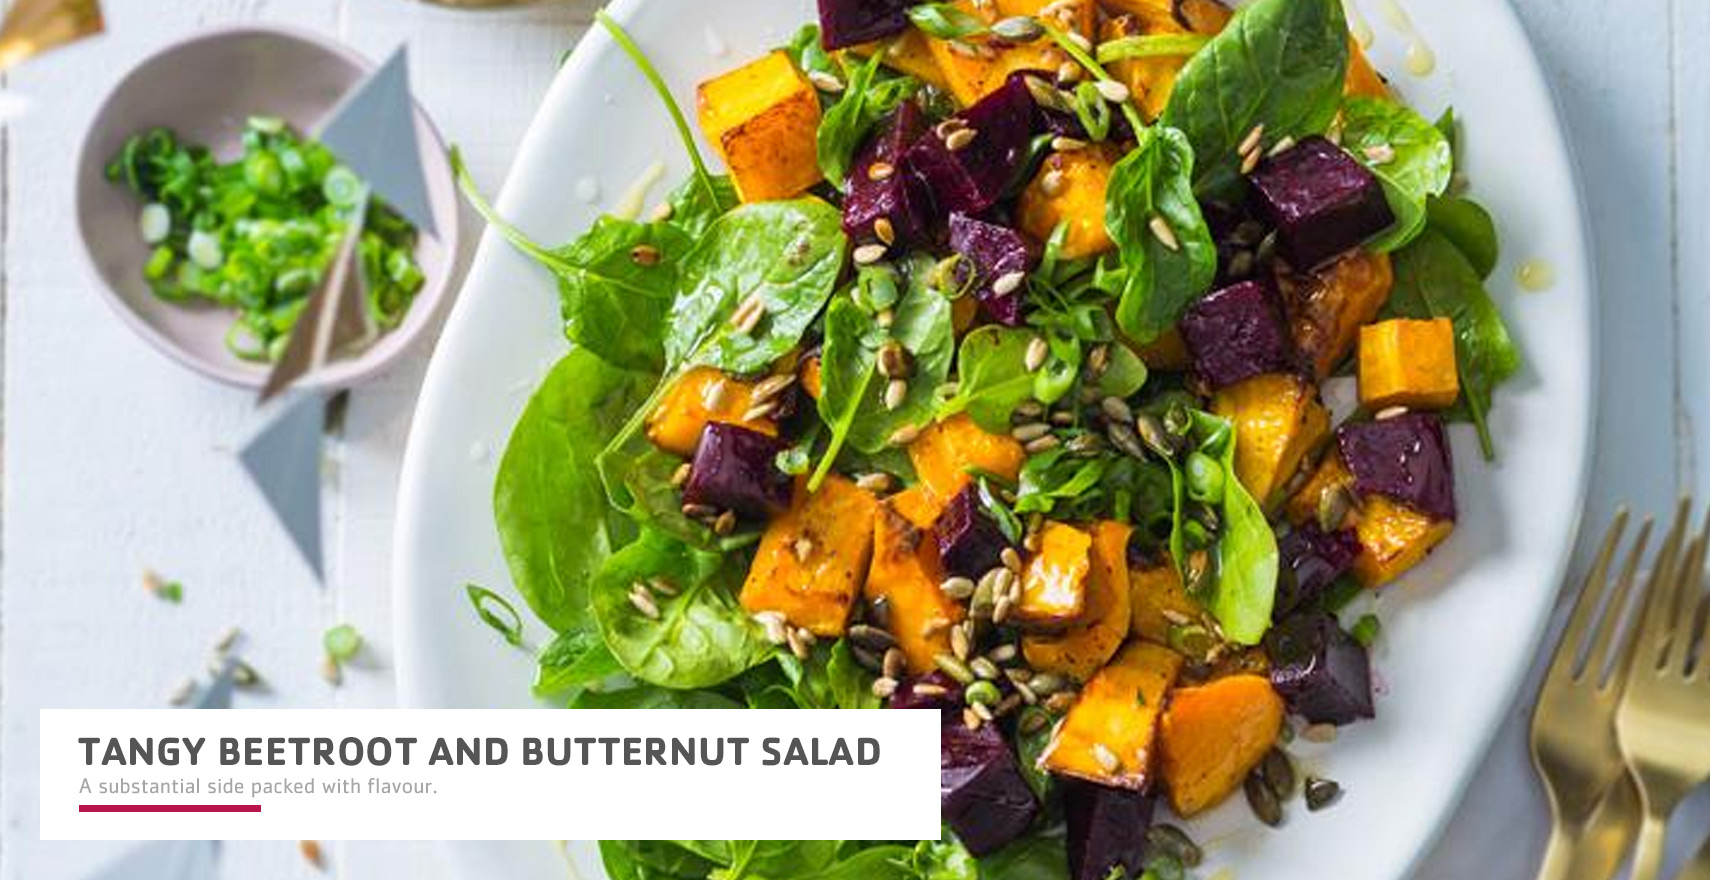 Tangy-beetroot-and-butternut-salad.jpg